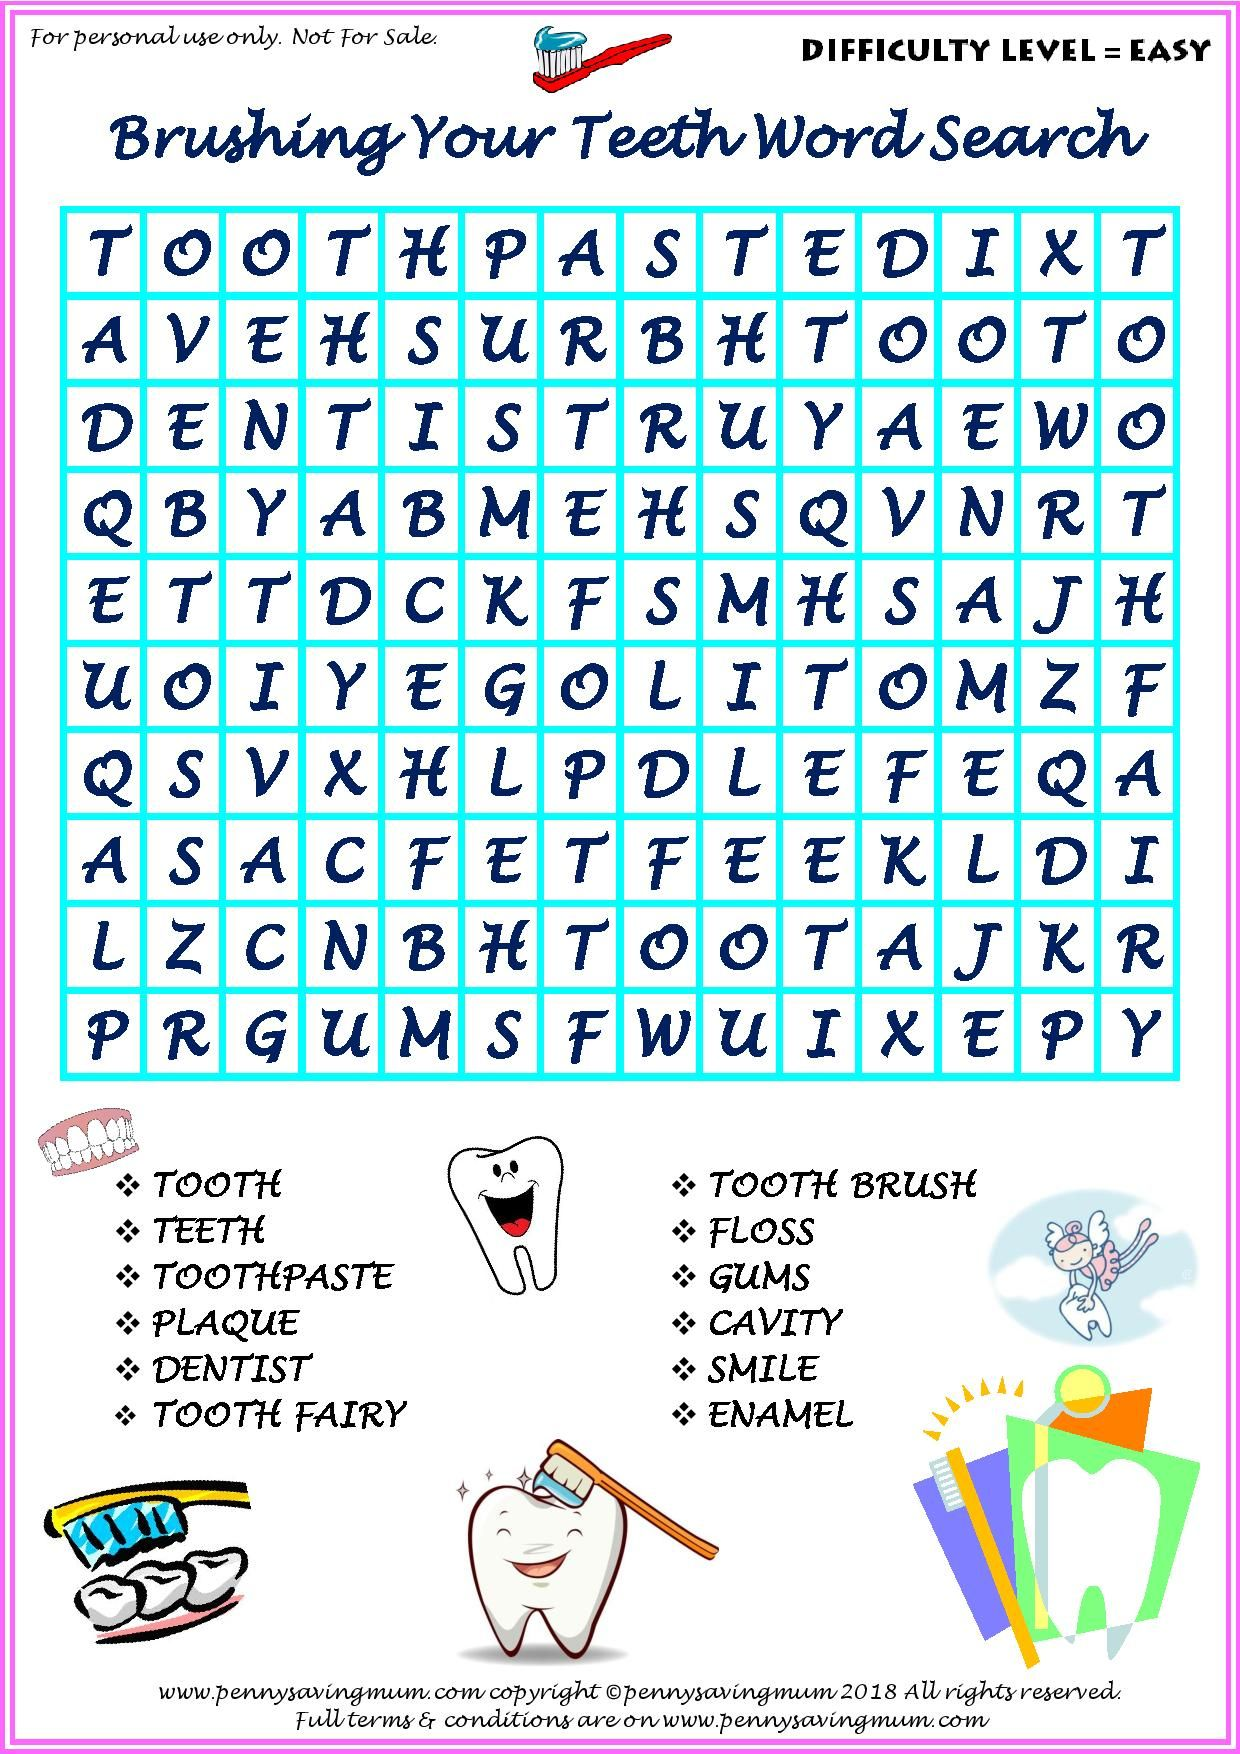 Word Search Brushing Your Teeth Easy Version